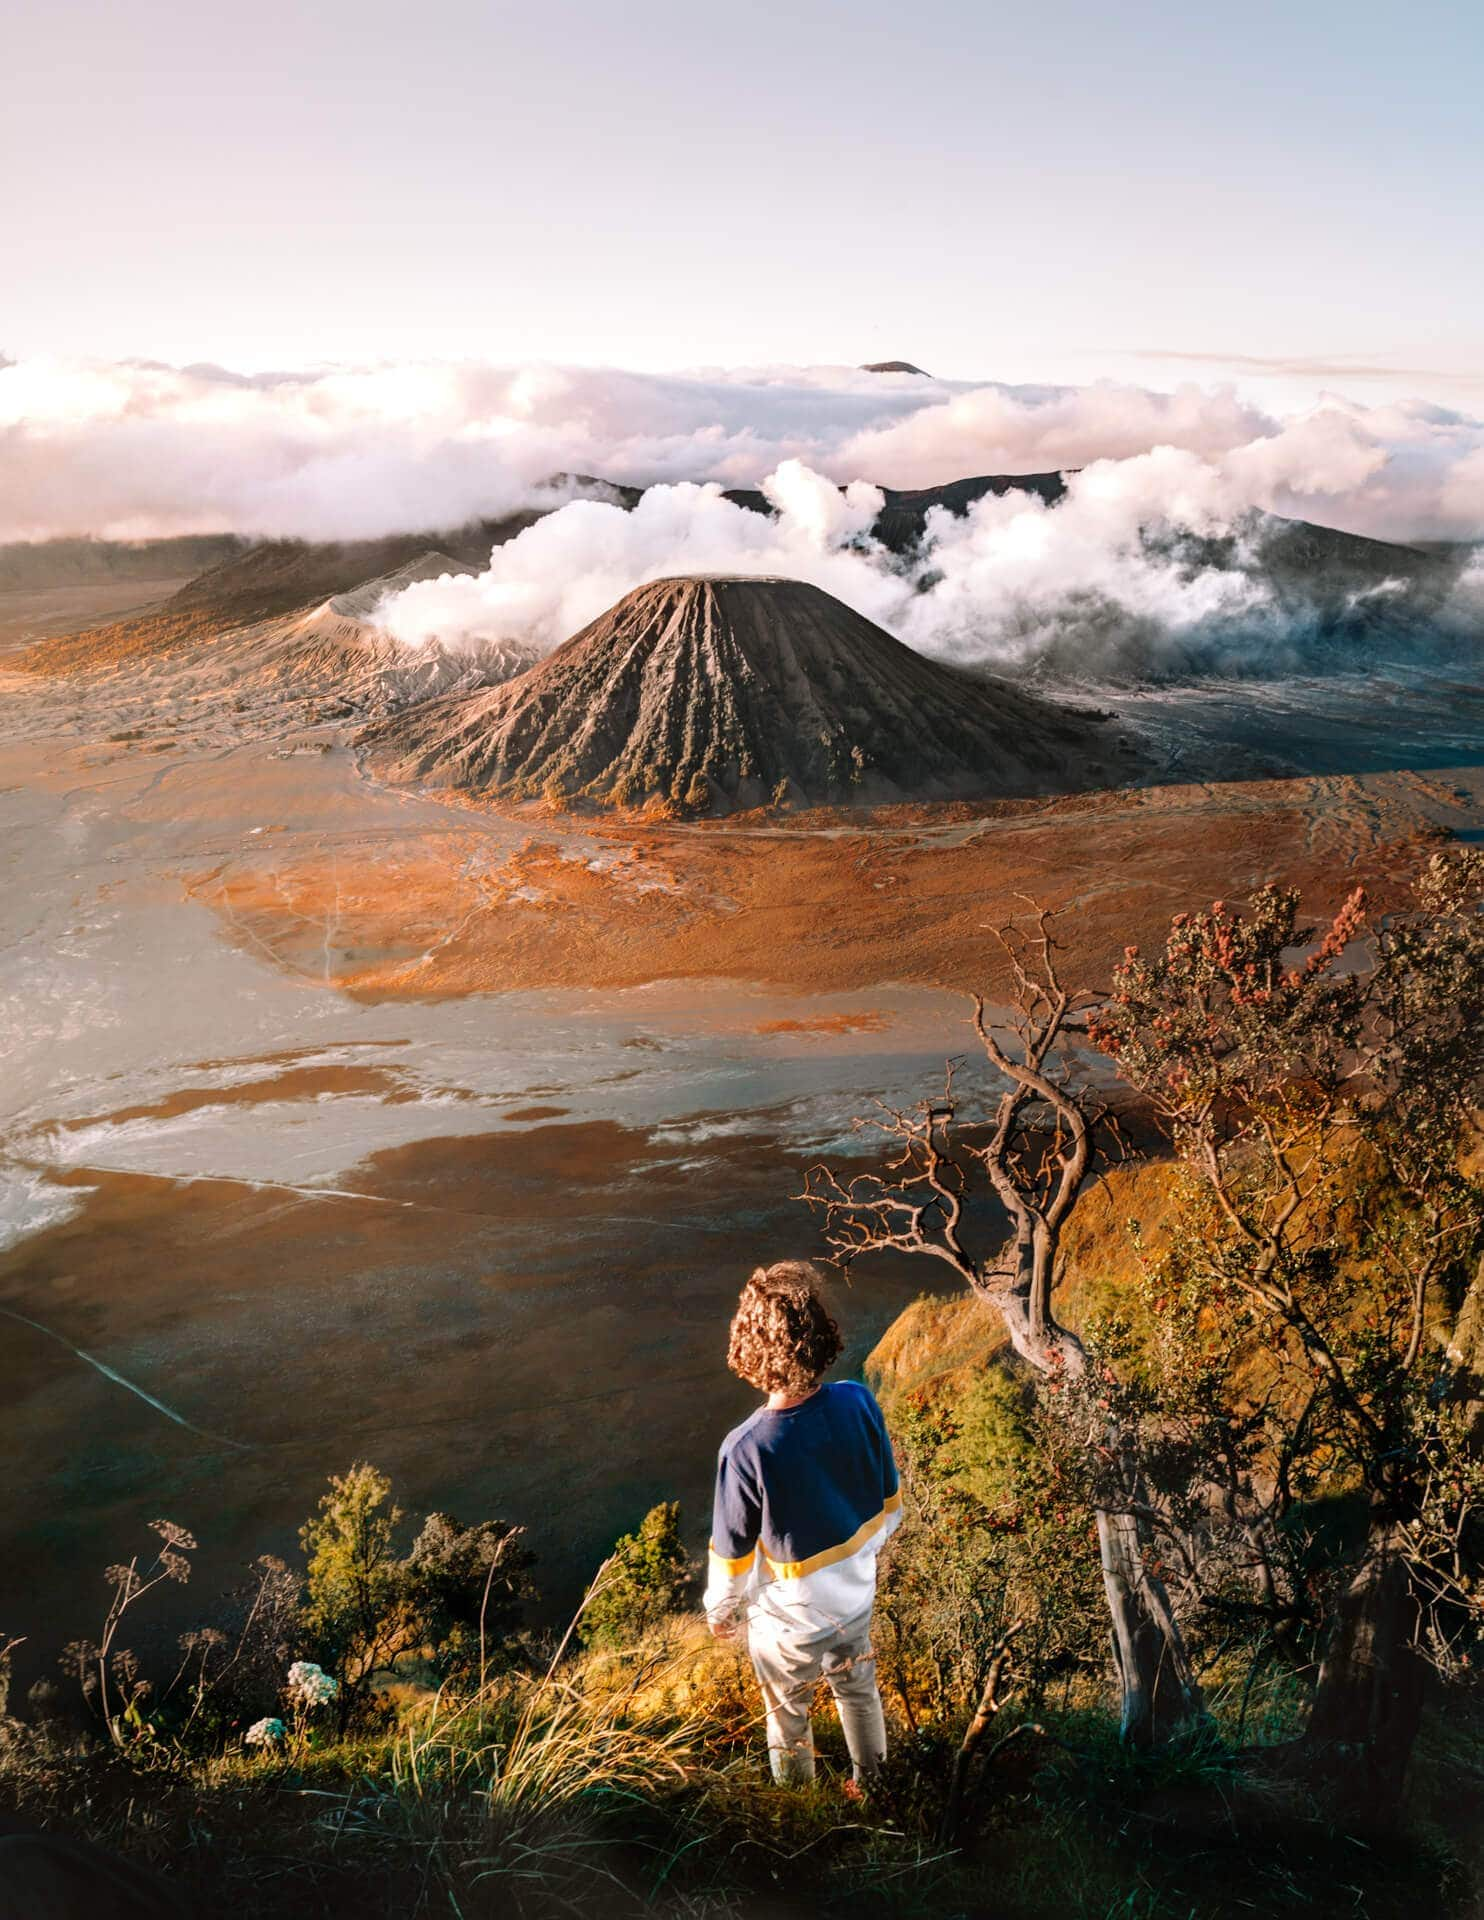 bromo ijen tour sunrise viewpoint